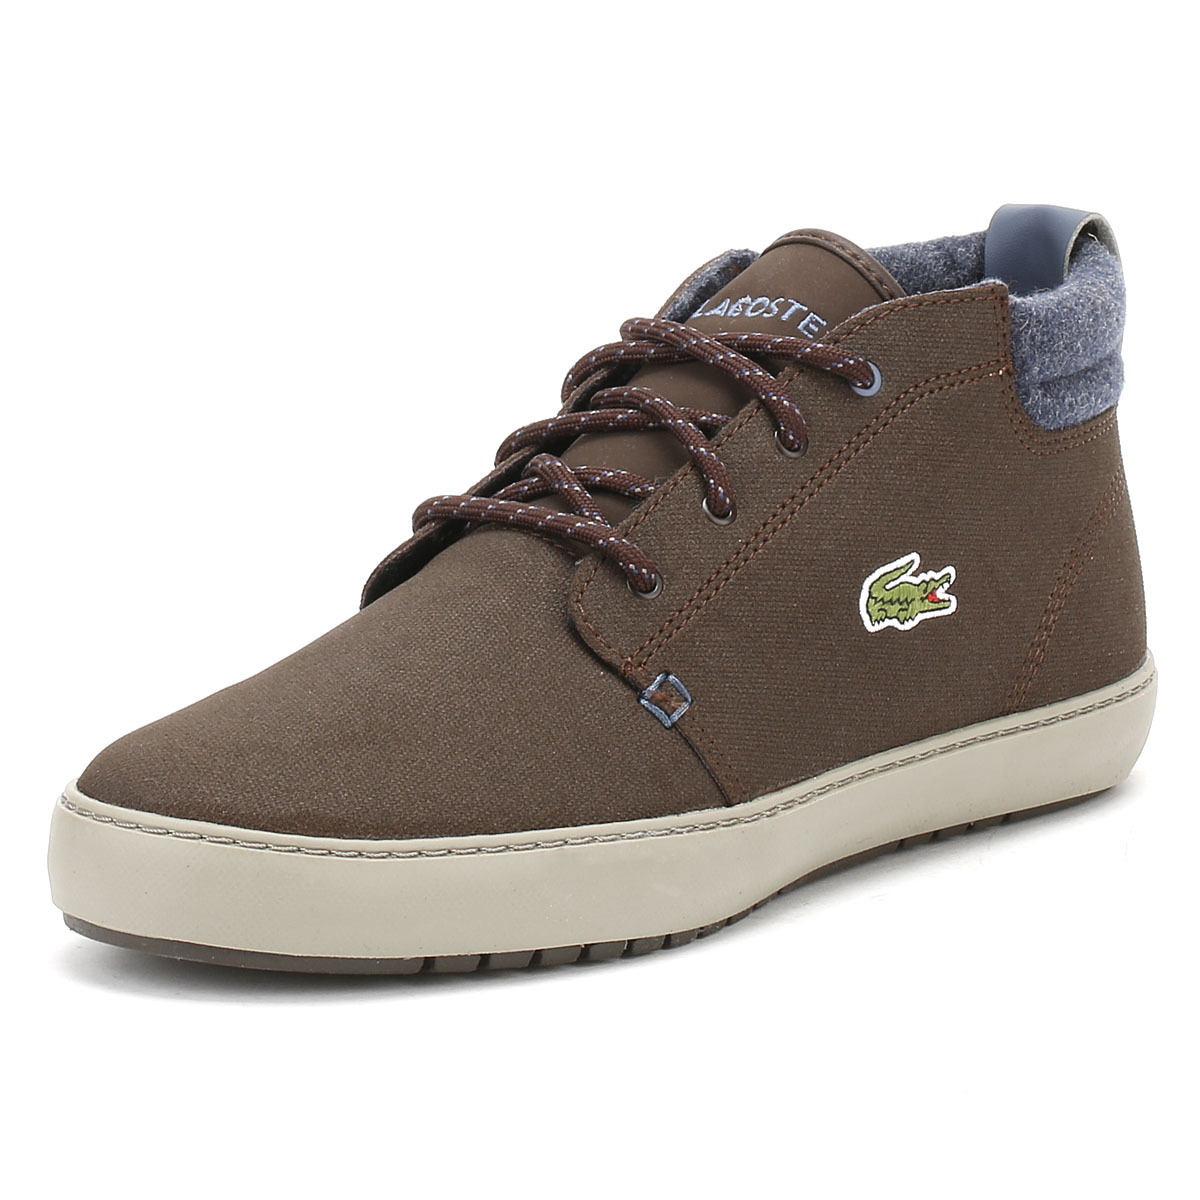 8f2a7a65d Details about Lacoste Mens Dark Brown Ankle Boots Ampthill Terra Leather  Trainers Winter Shoes